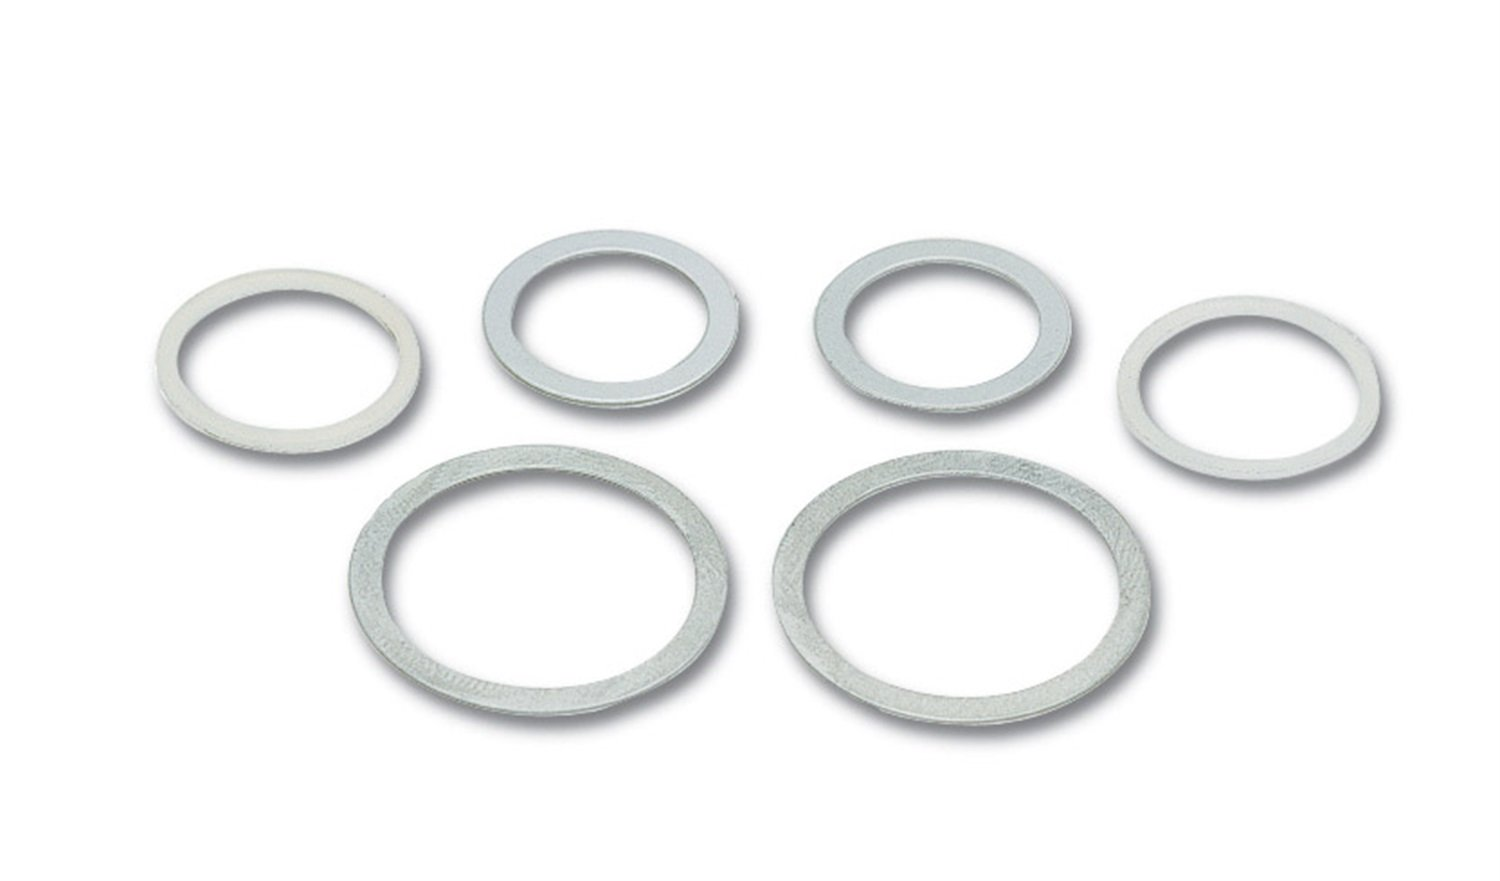 Russell RUS-645220 WASHER